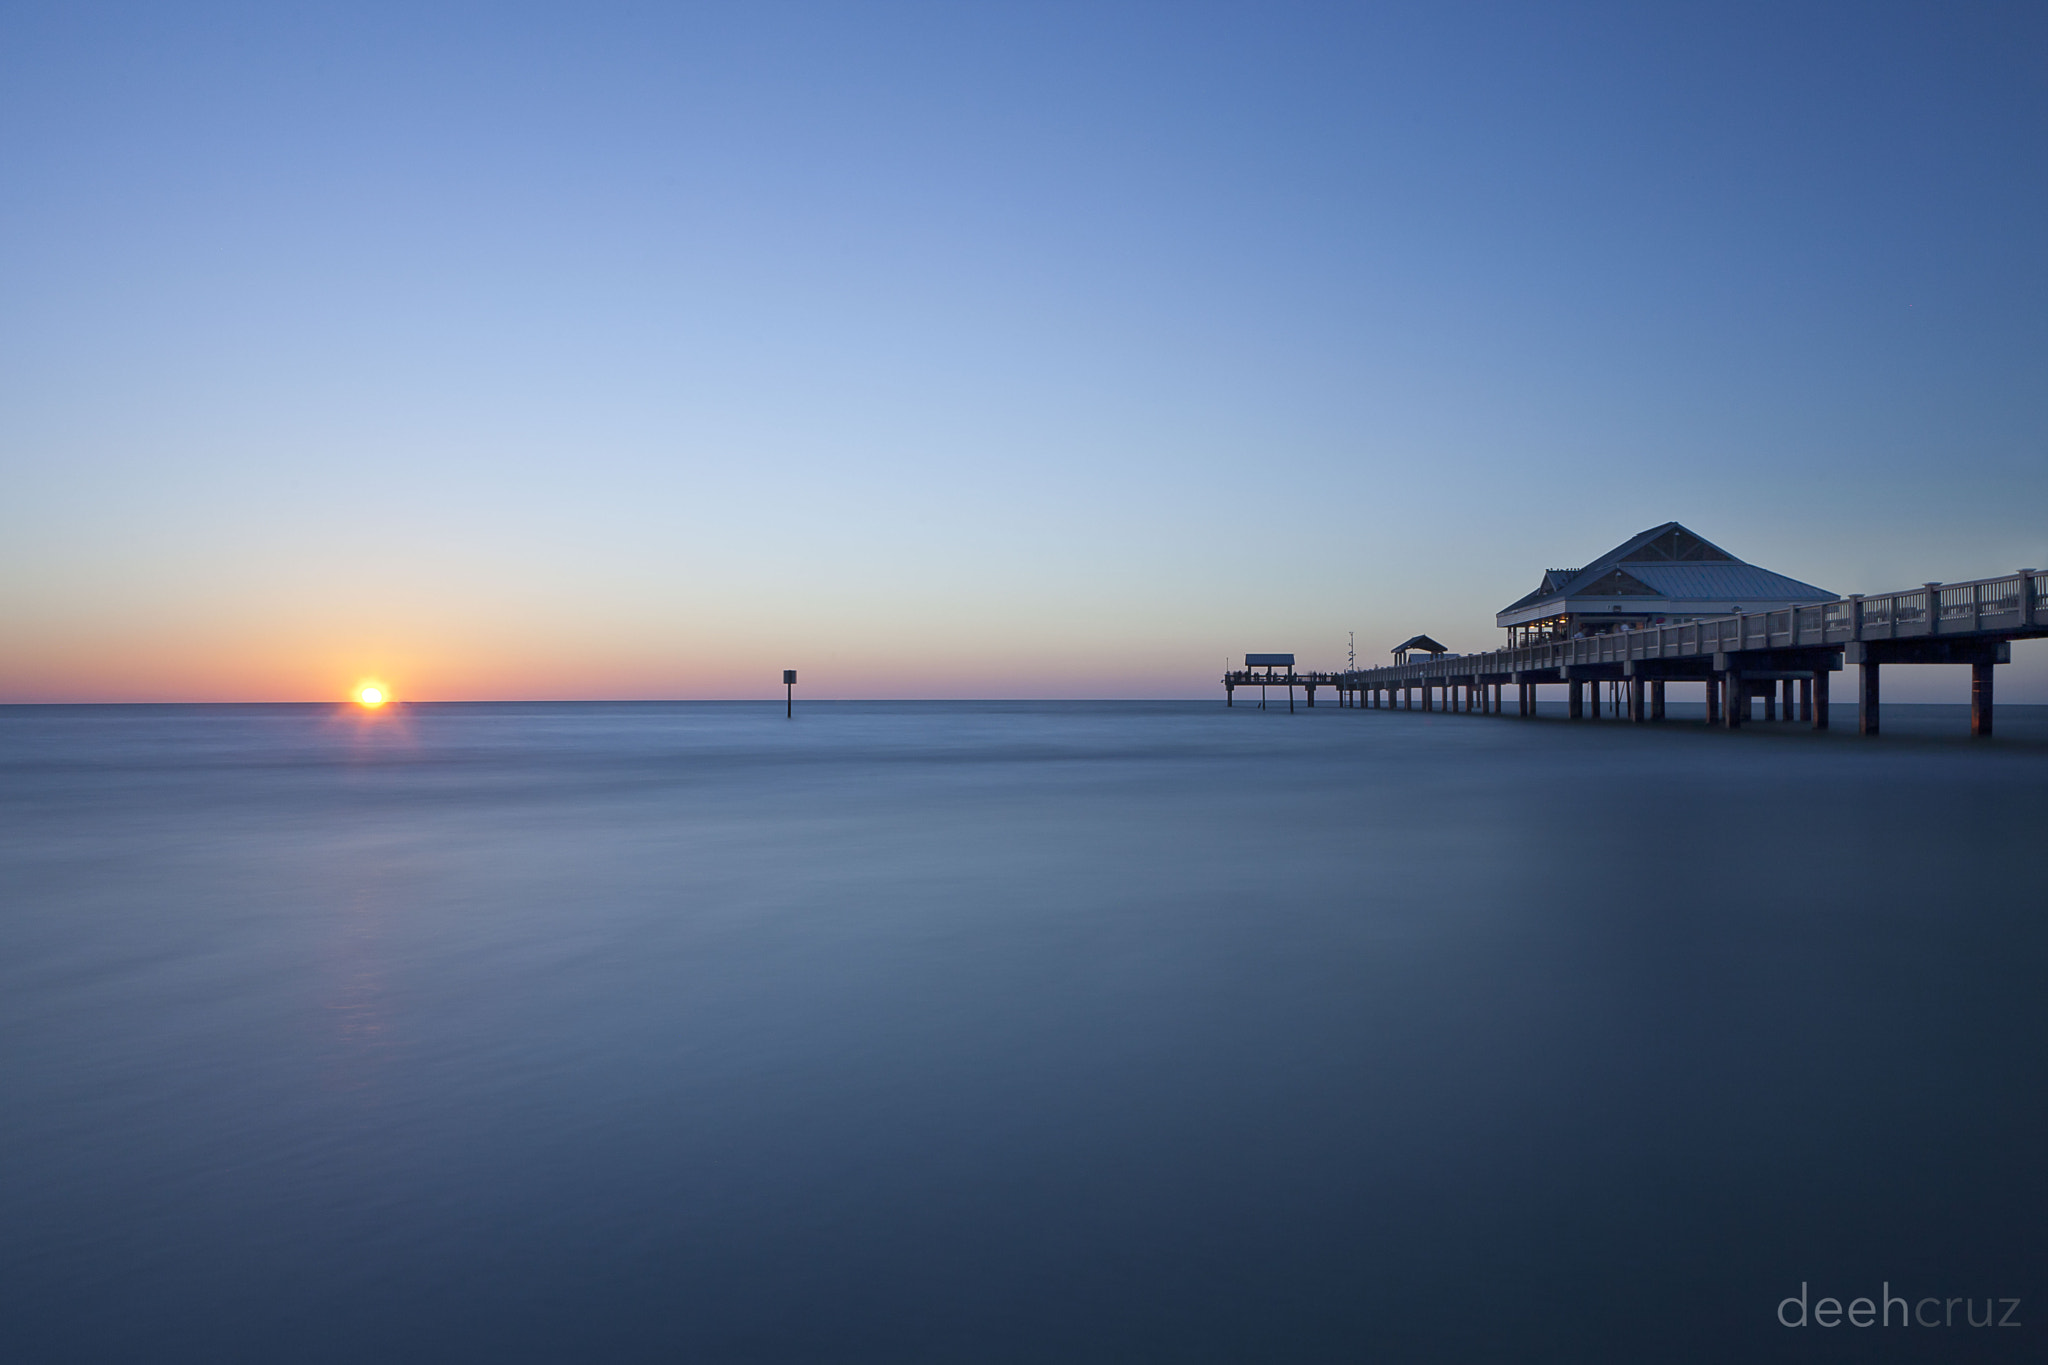 Photograph Sunset at Pier 60 by Randeeh Cruz on 500px